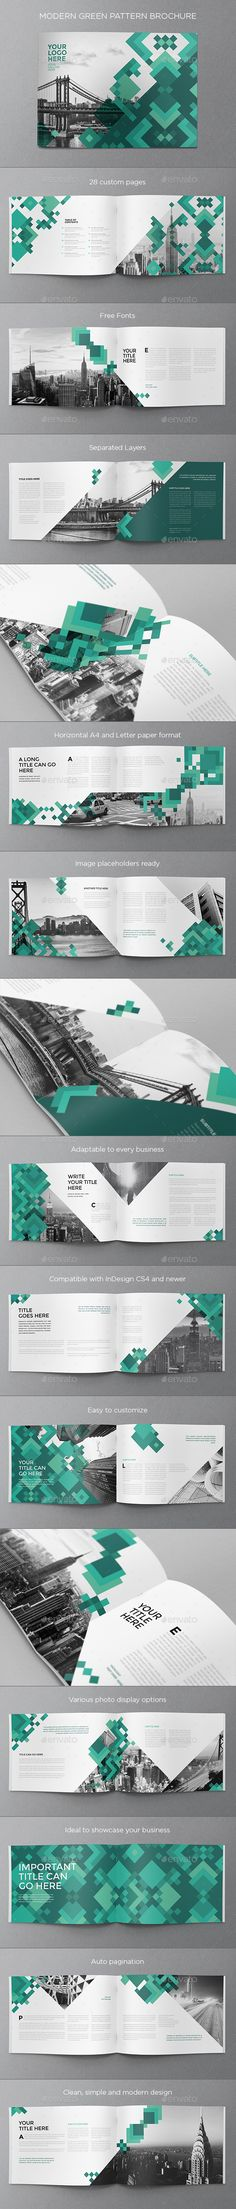 Modern Green Pattern Brochure Template InDesign INDD. Download here: http://graphicriver.net/item/modern-green-pattern-brochure/15863364?ref=ksioks